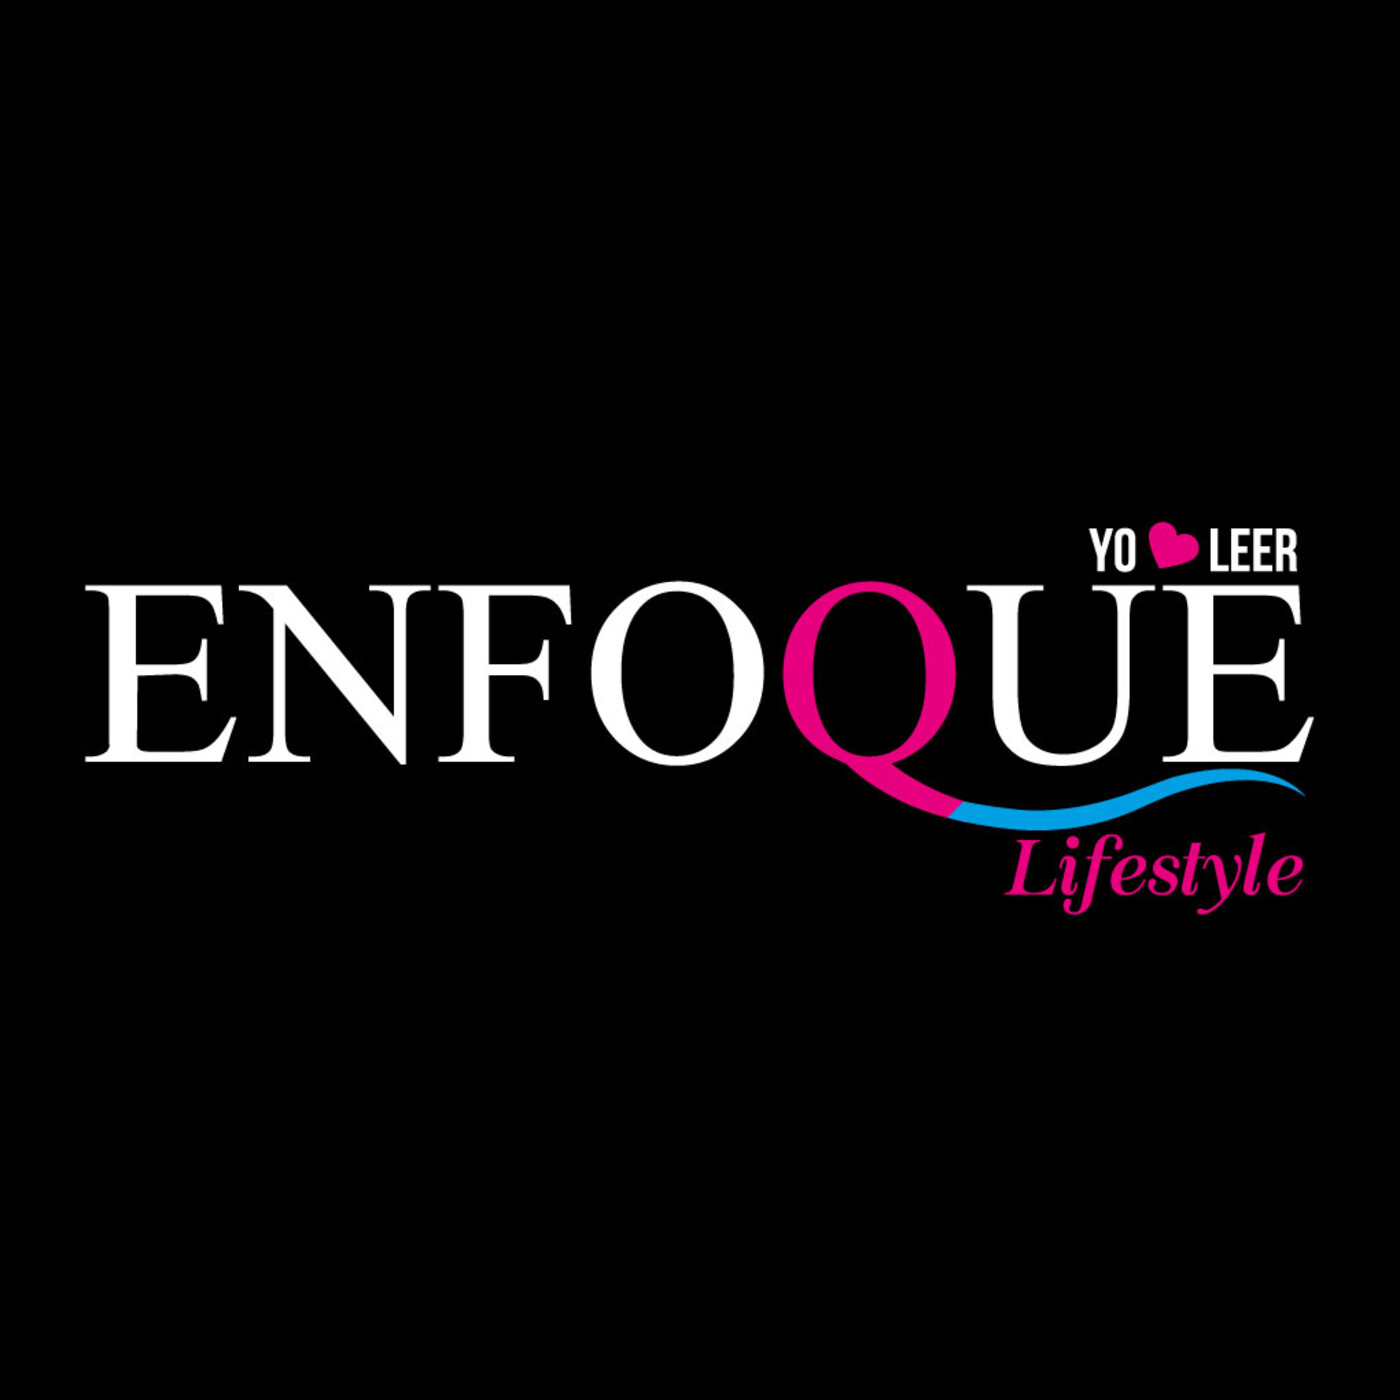 Enfoque Lifestyle